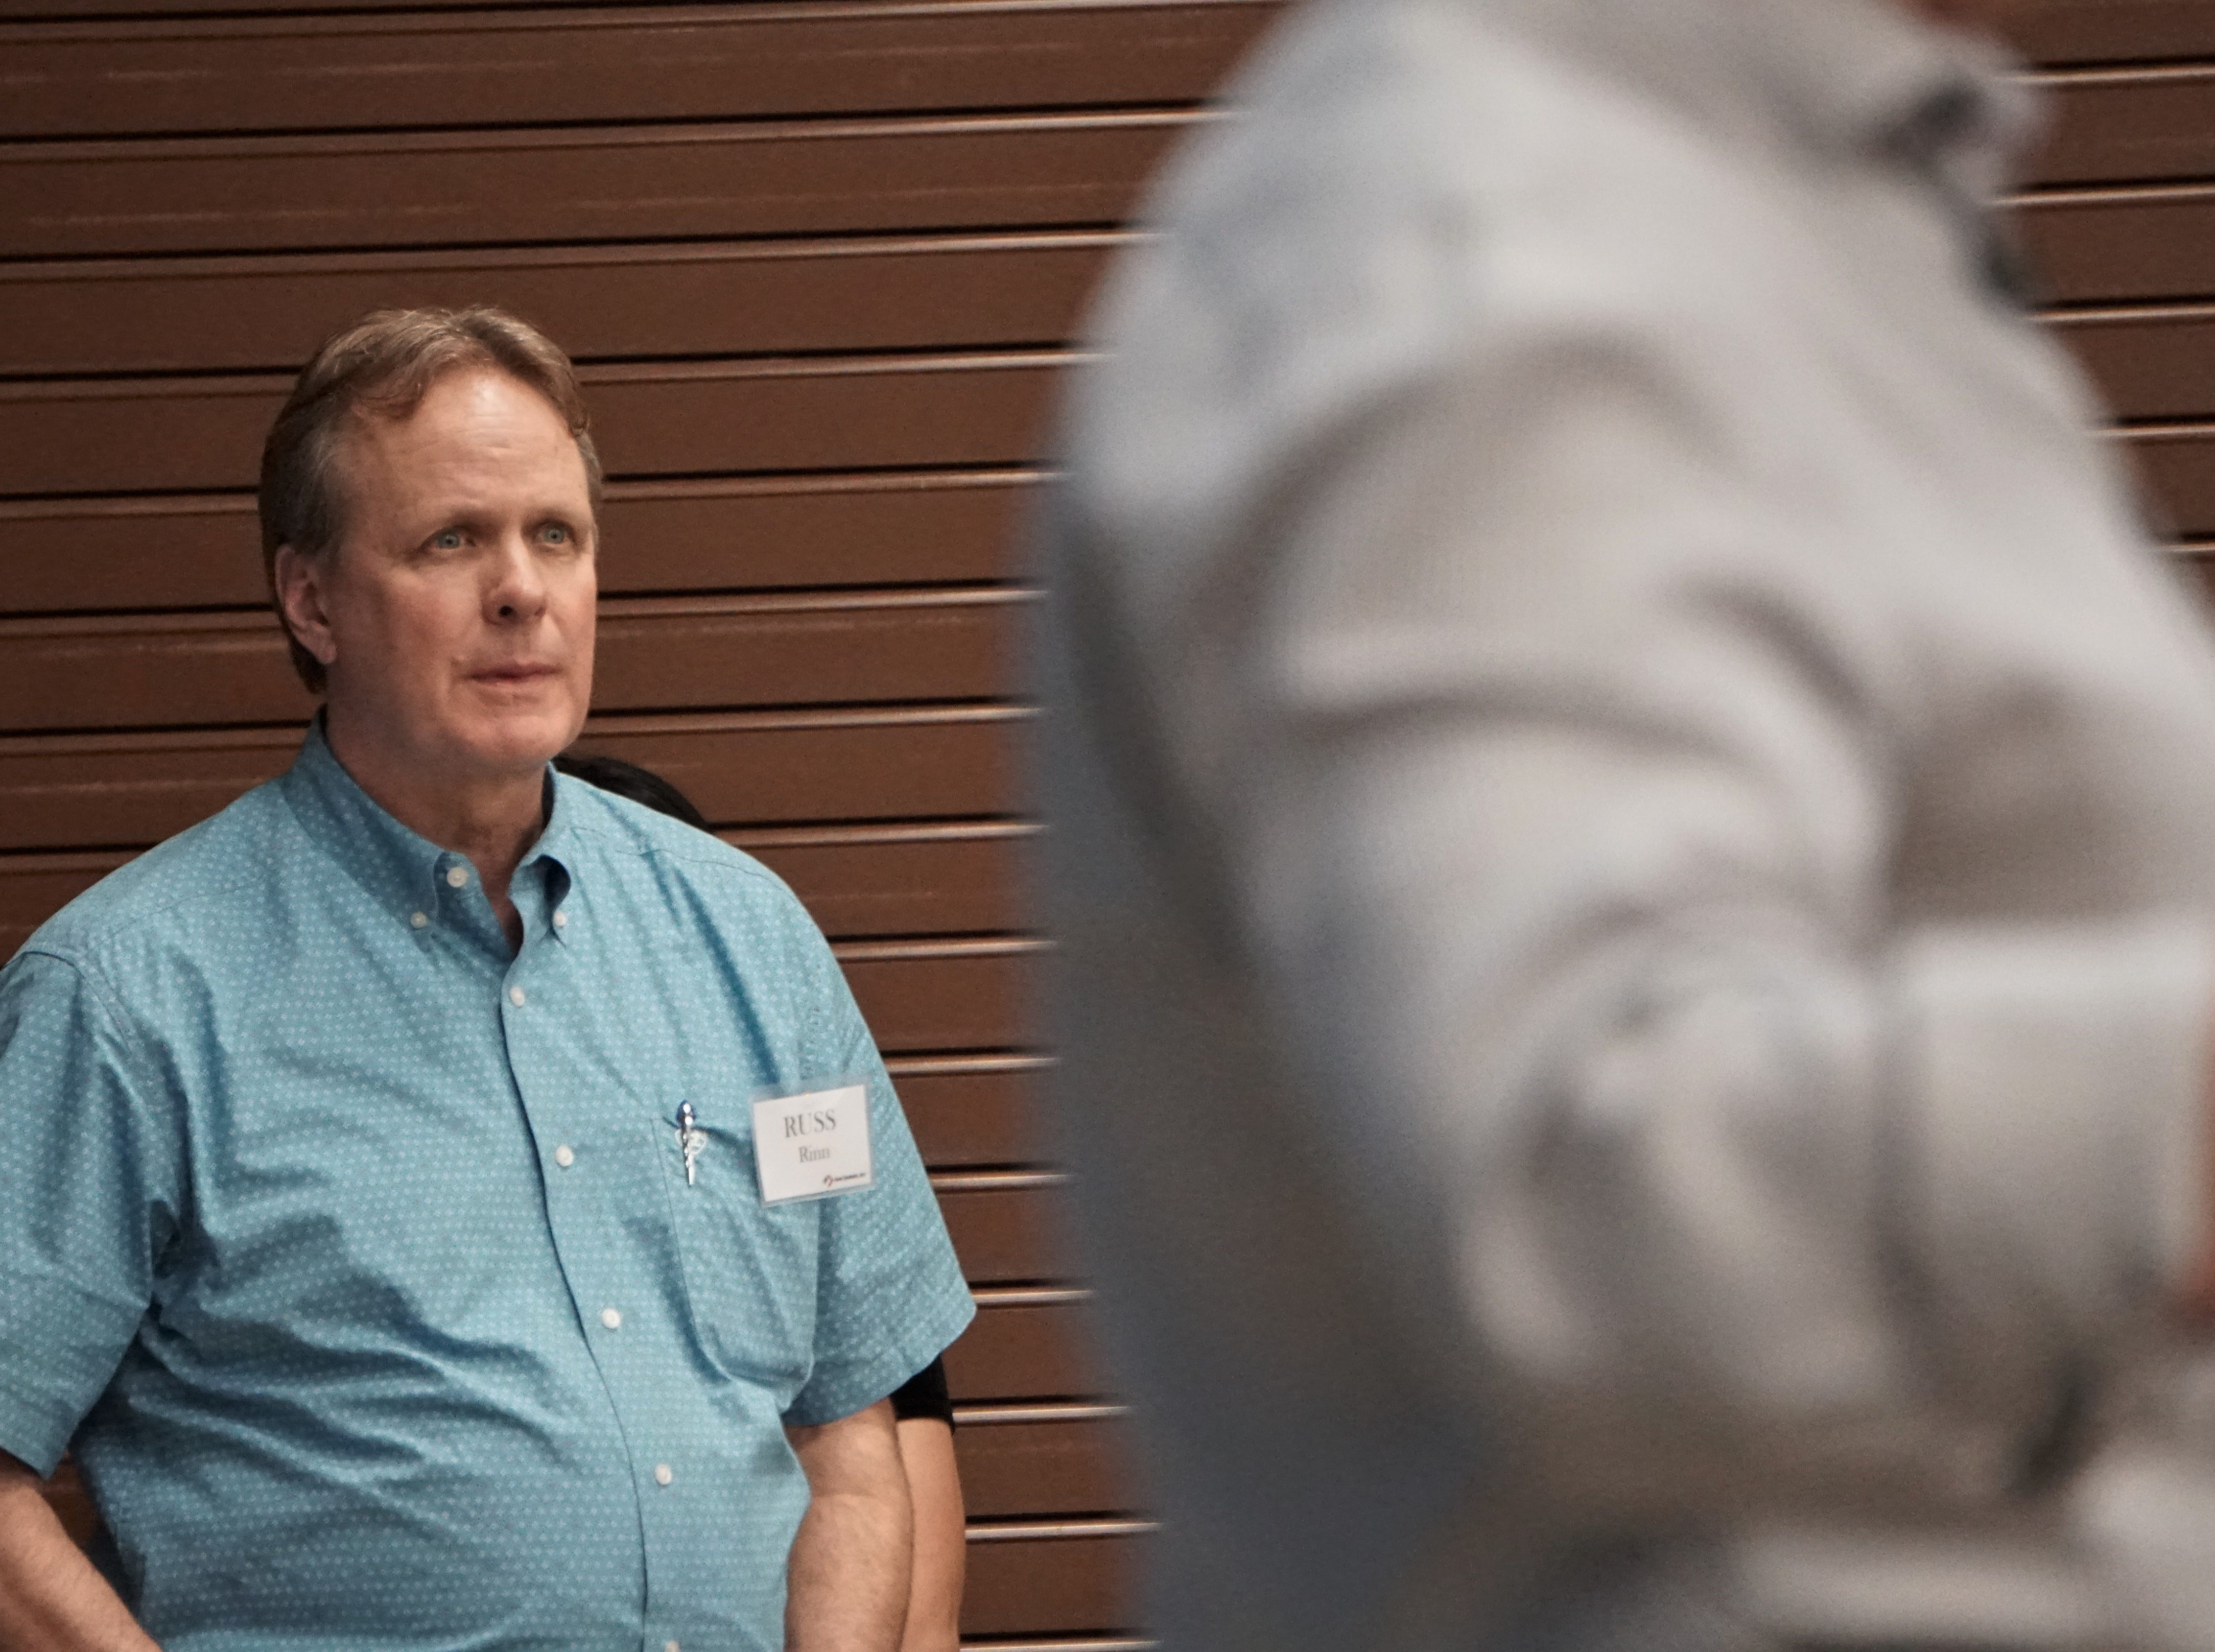 Russ Rinn, executive vice president of metals recycling for Steel Dynamics, listens as the company's CEO, Mark Millett, addresses the audience during a meet and greet at the San Patricio County Civic Center in Sinton on March 13, 2019.